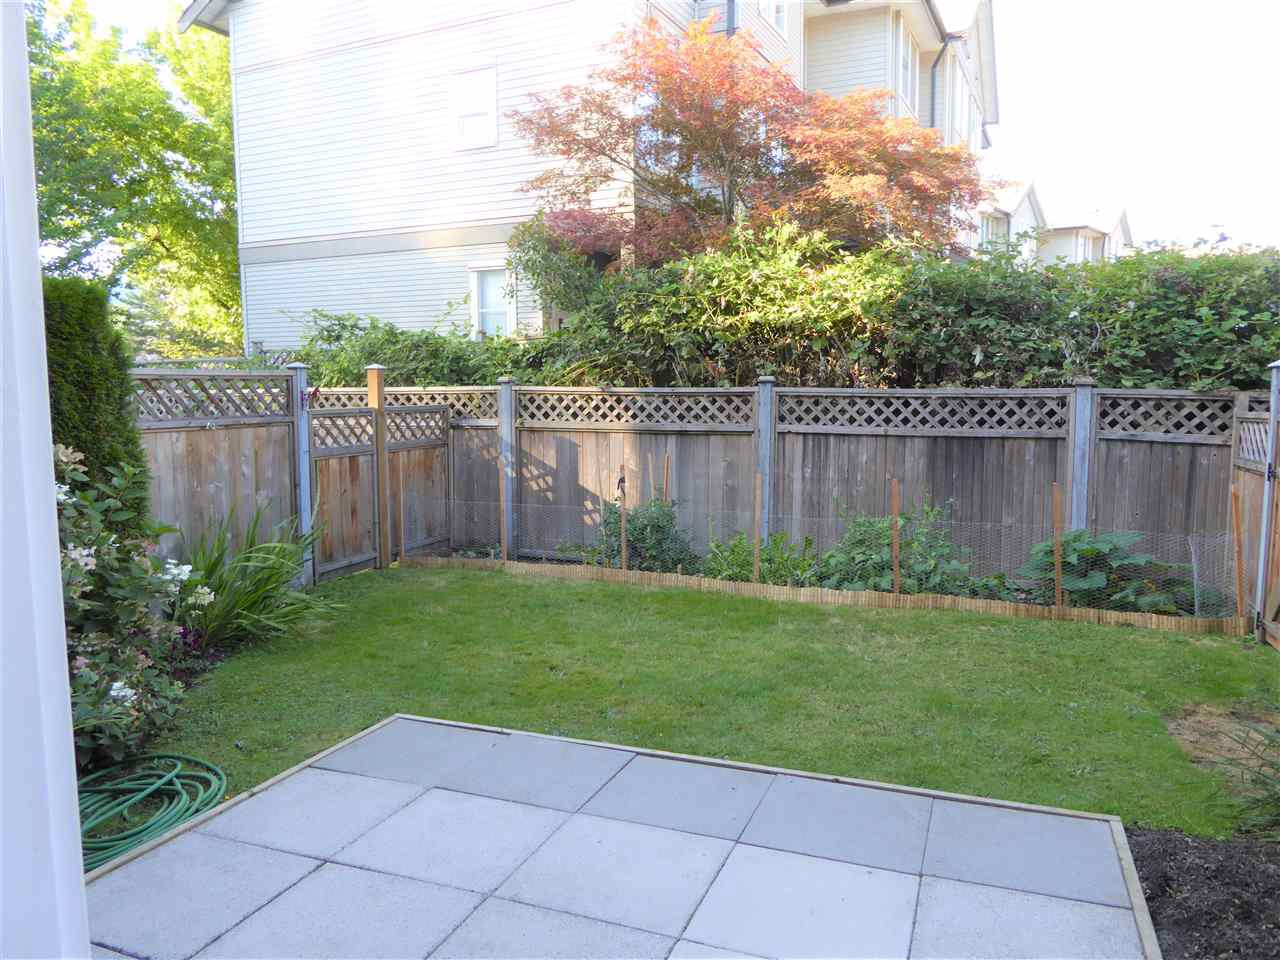 """Photo 15: Photos: 7 2538 PITT RIVER Road in Port Coquitlam: Mary Hill Townhouse for sale in """"RIVER COURT"""" : MLS®# R2392778"""